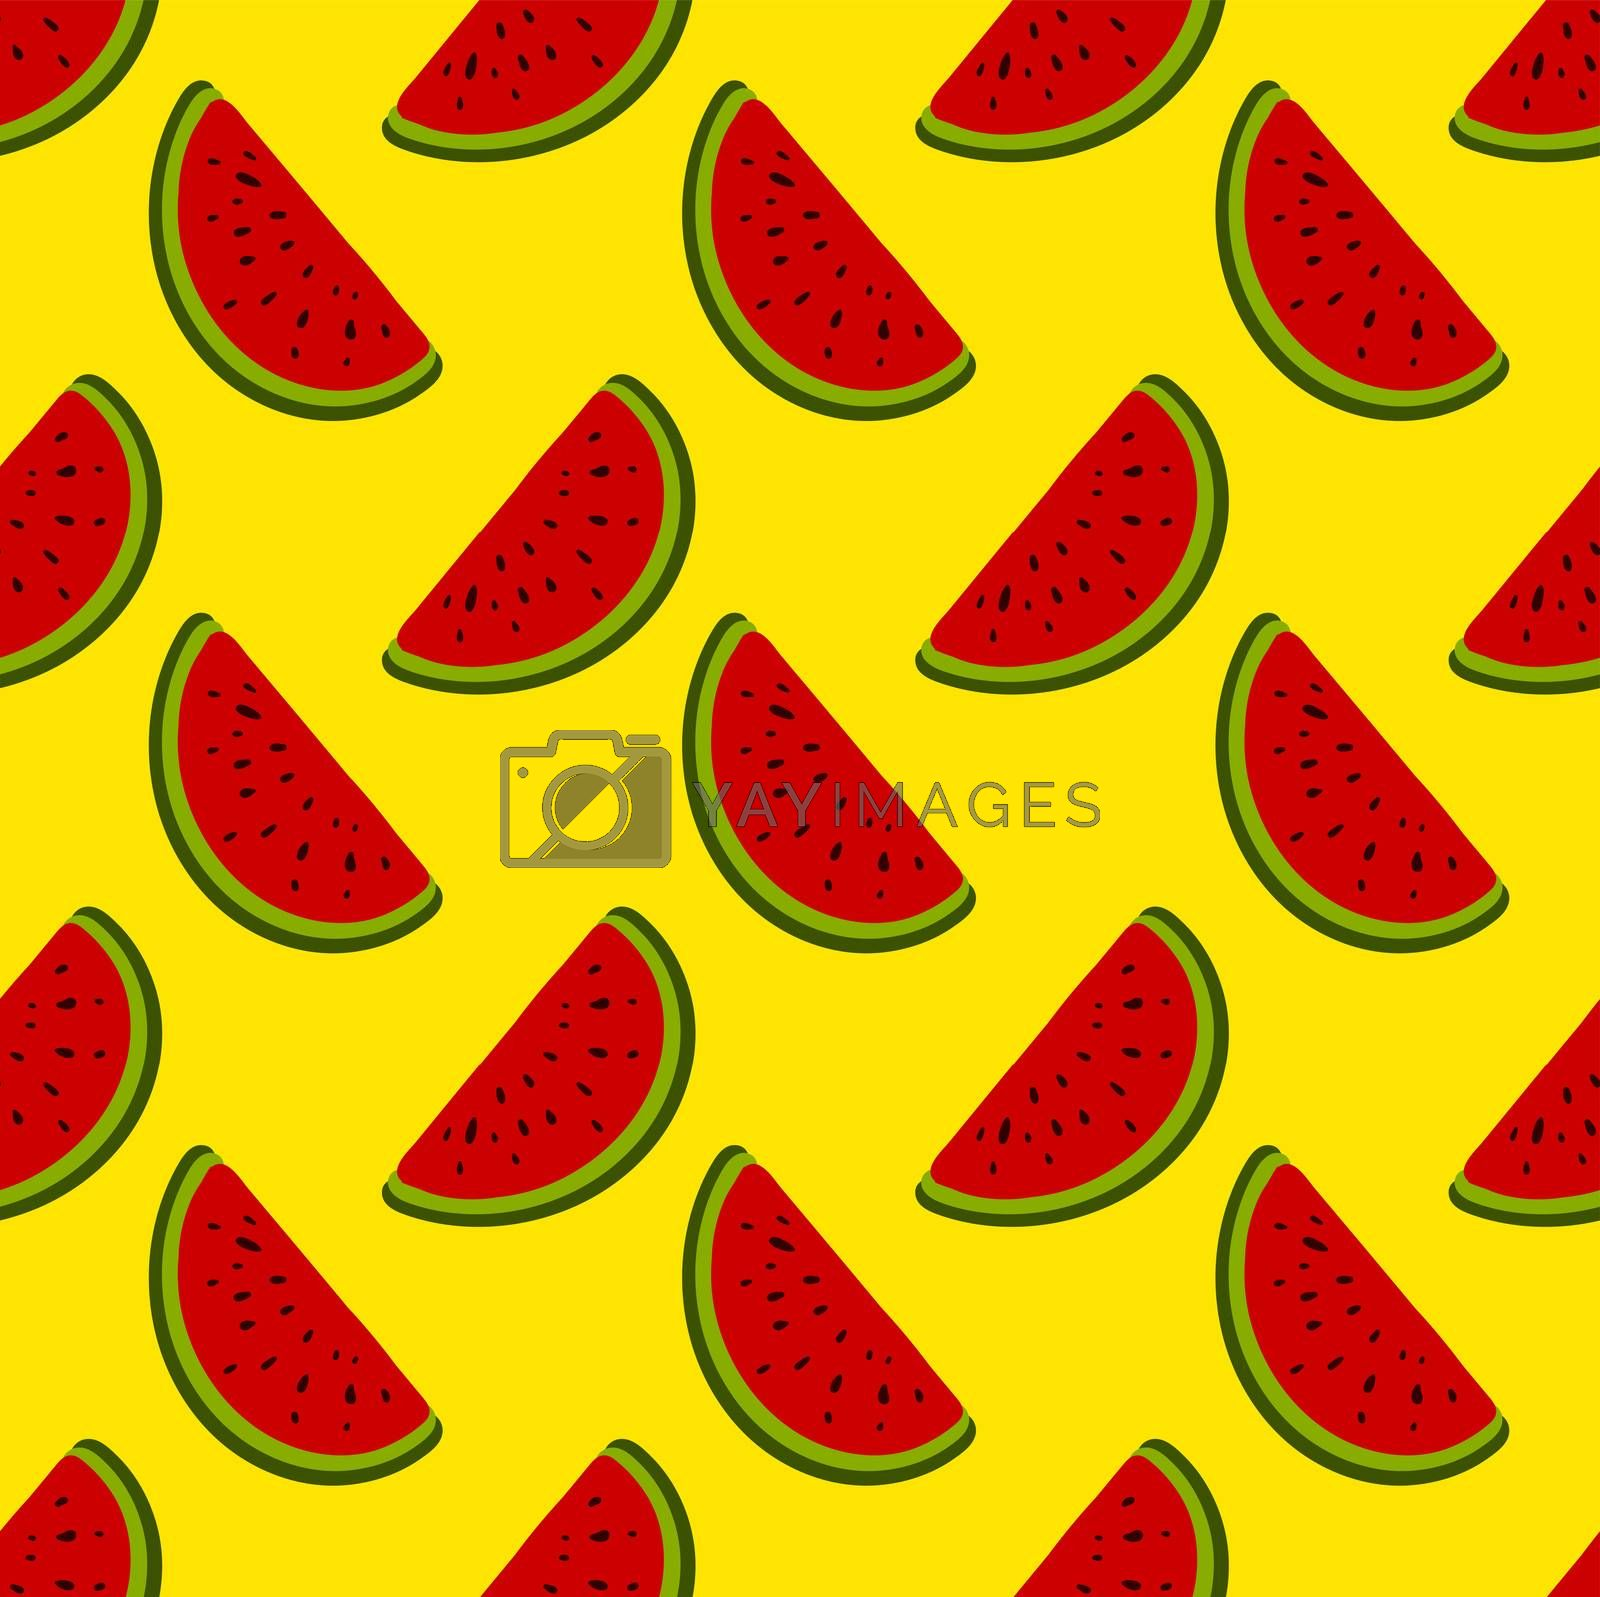 Watermelon pieces pattern , illustration, vector on white background